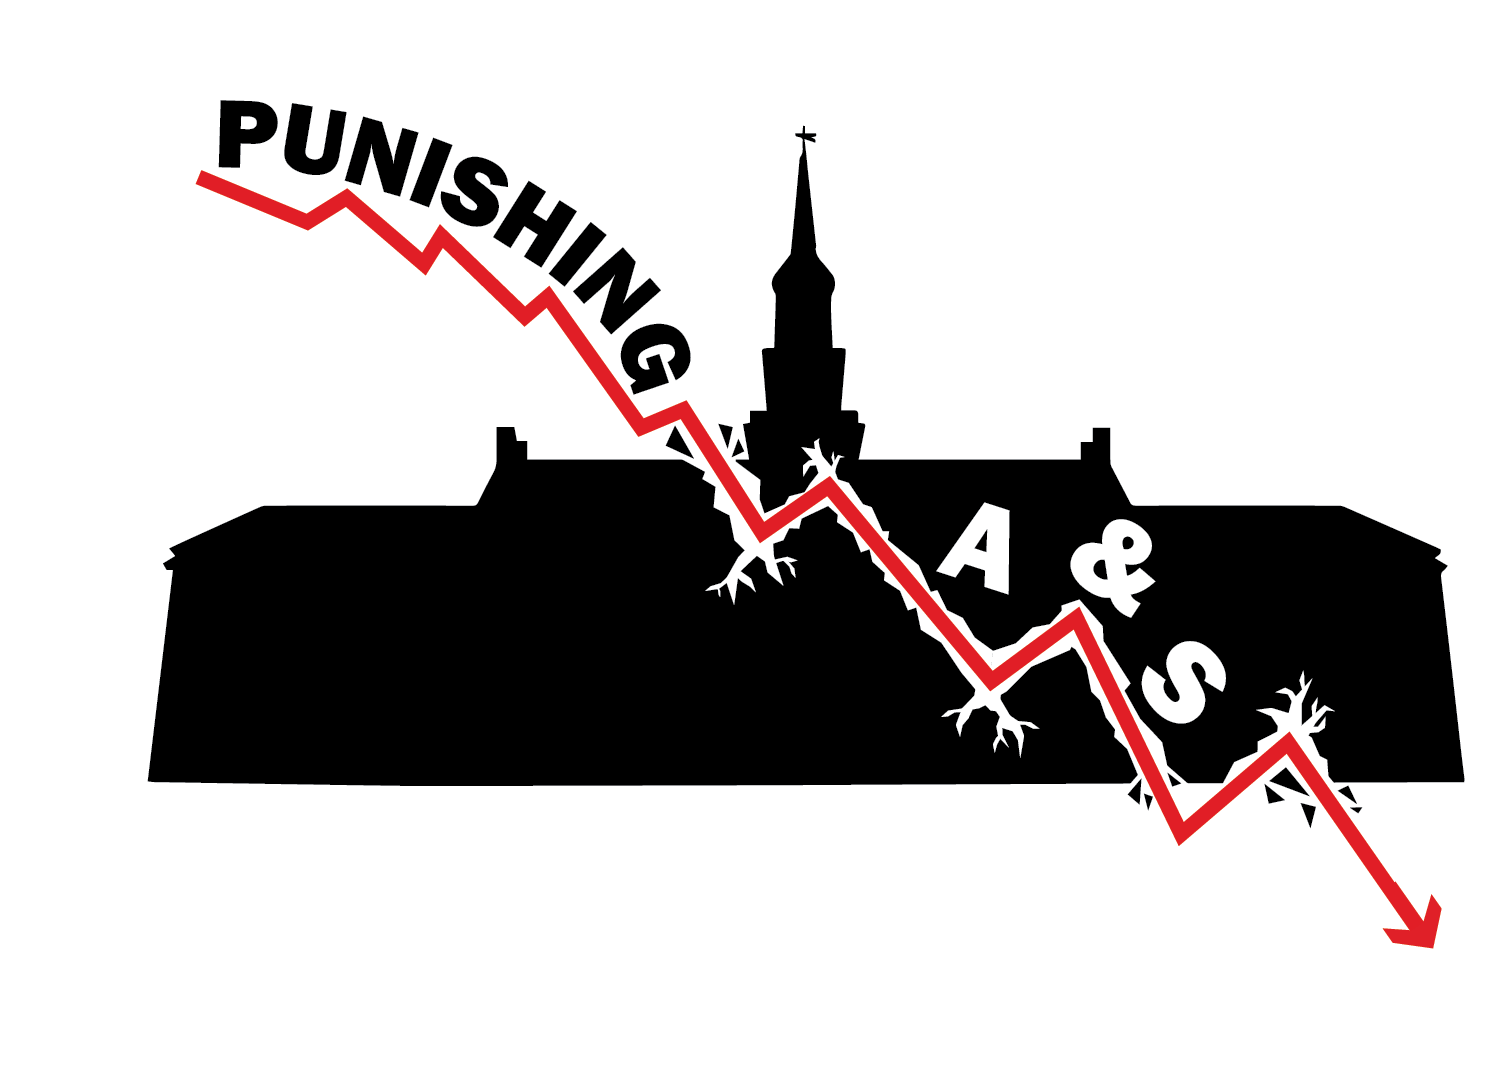 Punishing A&S_final.png